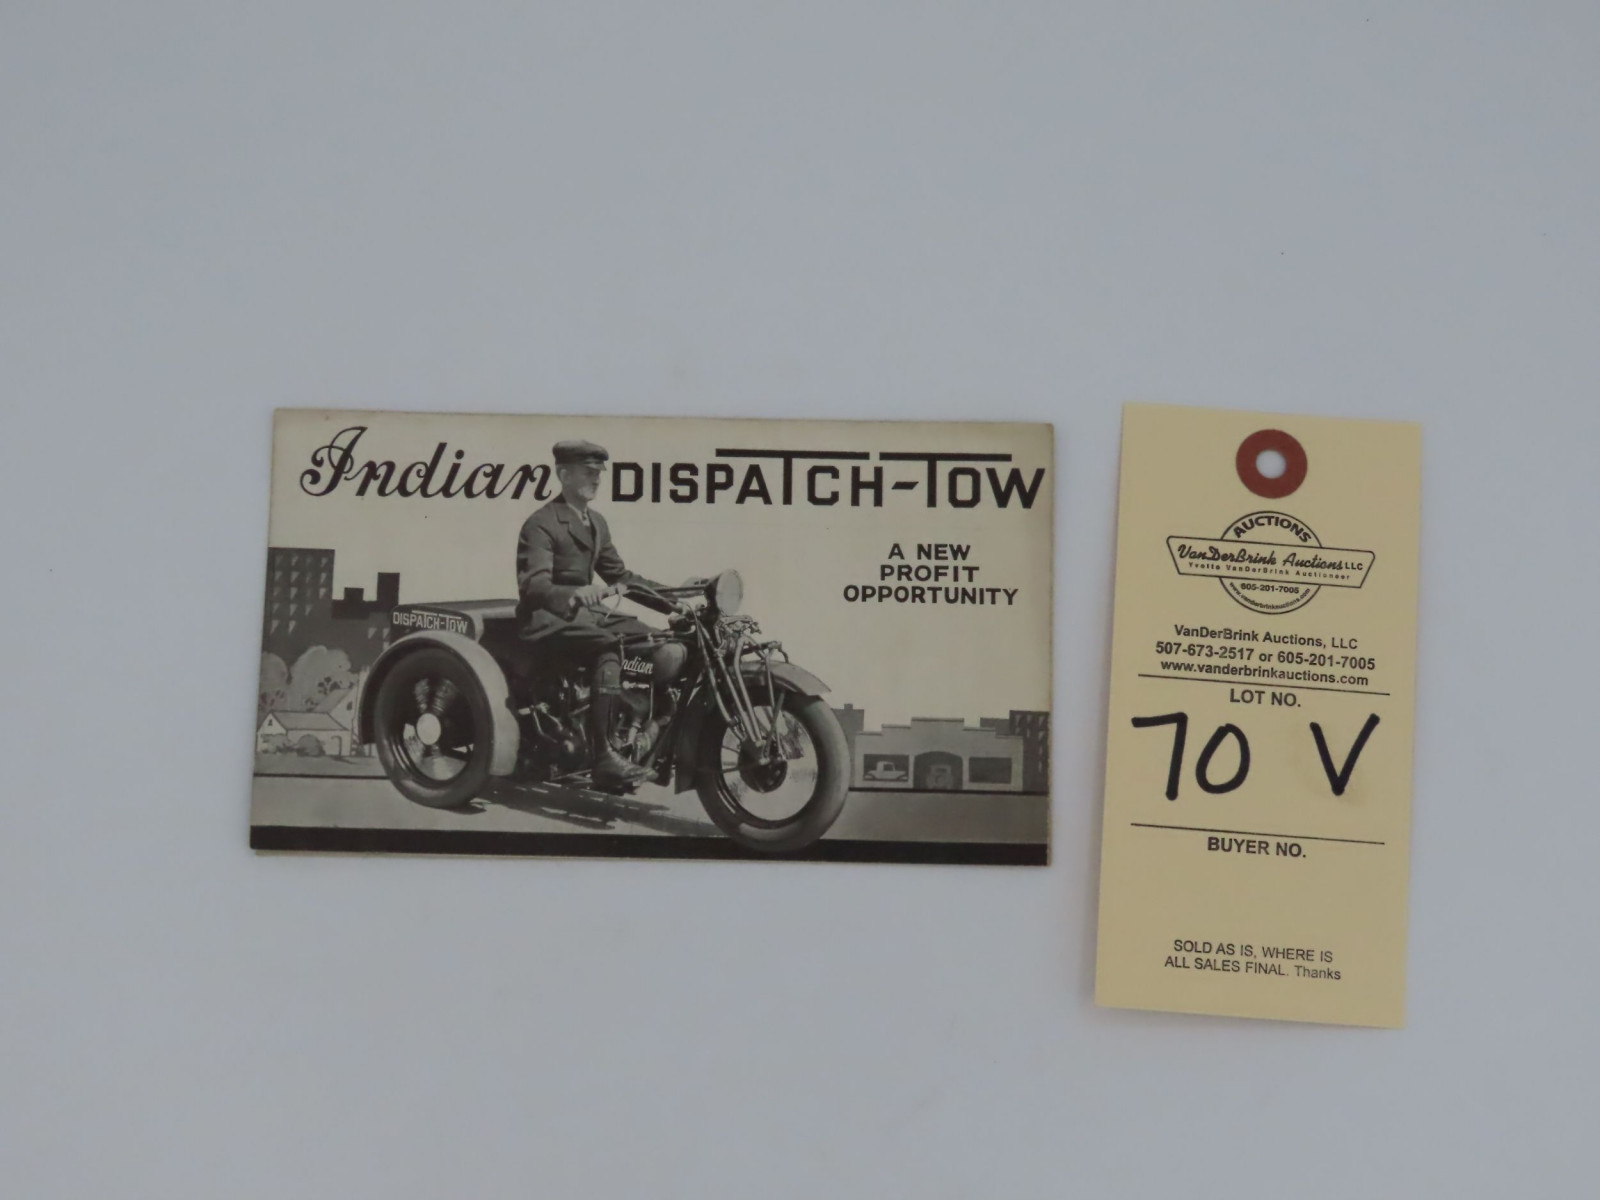 Indian Dispatch - Tow Brochure - Image 1